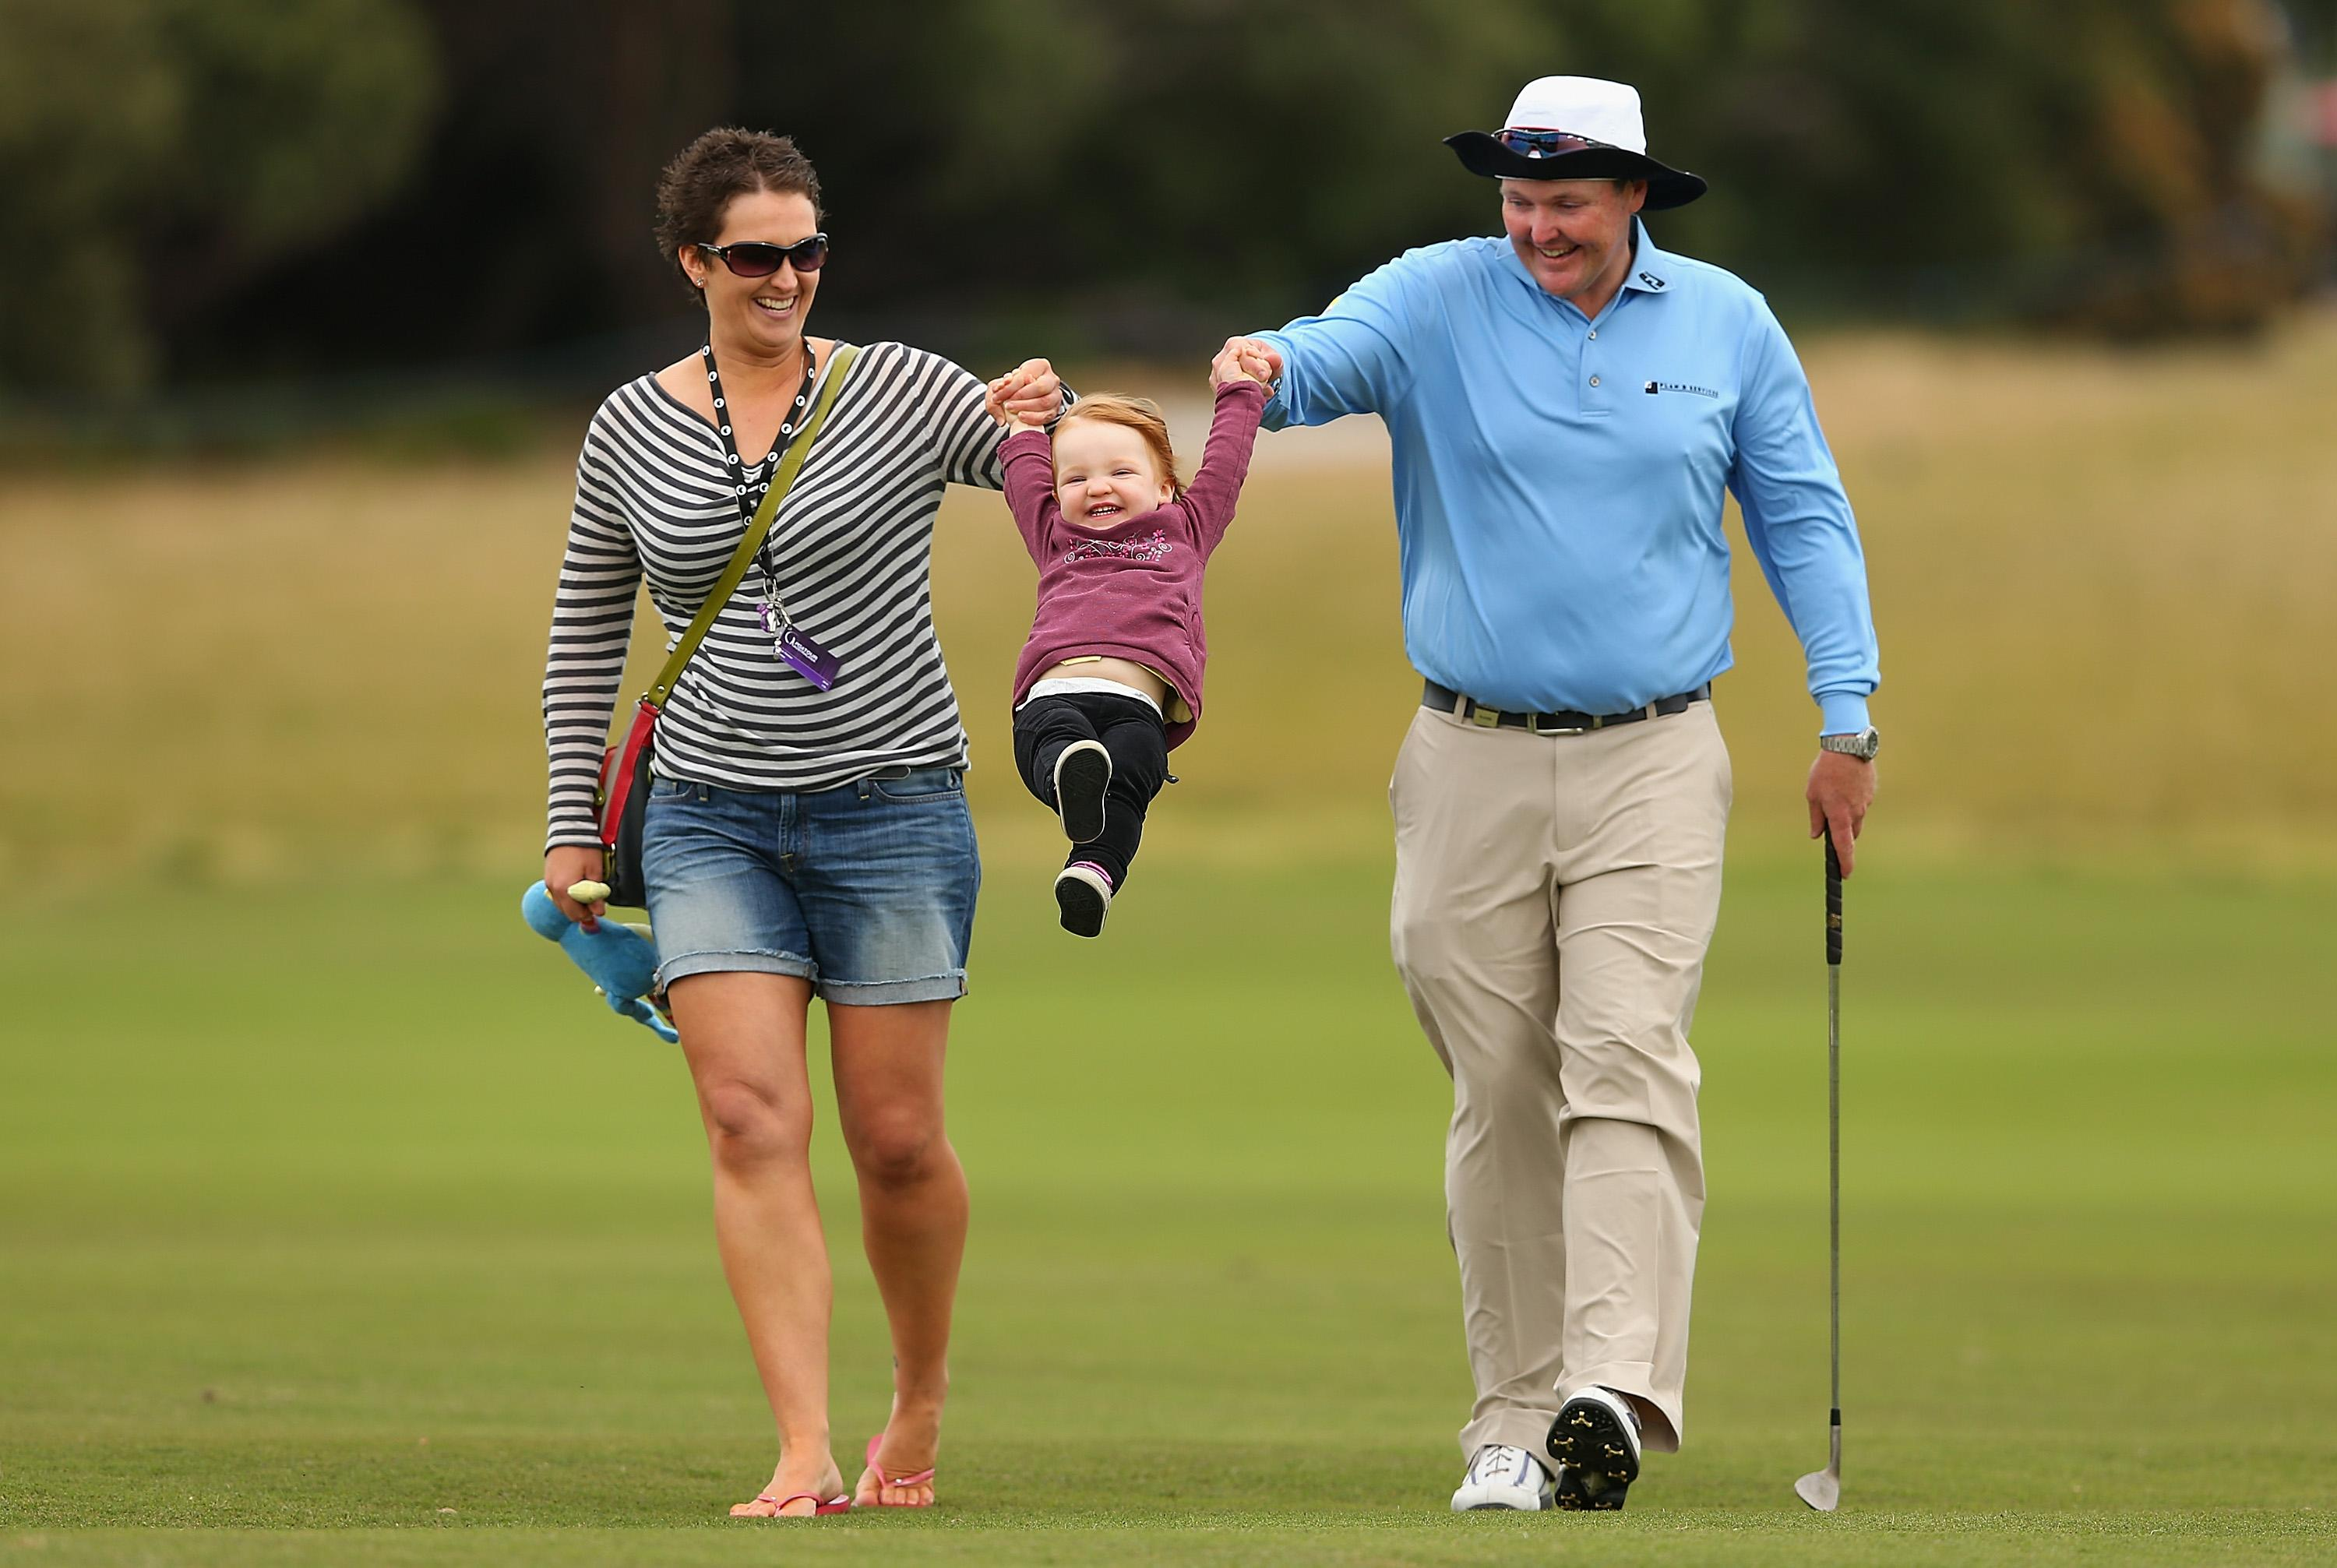 Jarrod Lyle of Australia walks the course with wife Briony and daughter Lusi ahead of the 2013 Australian Masters